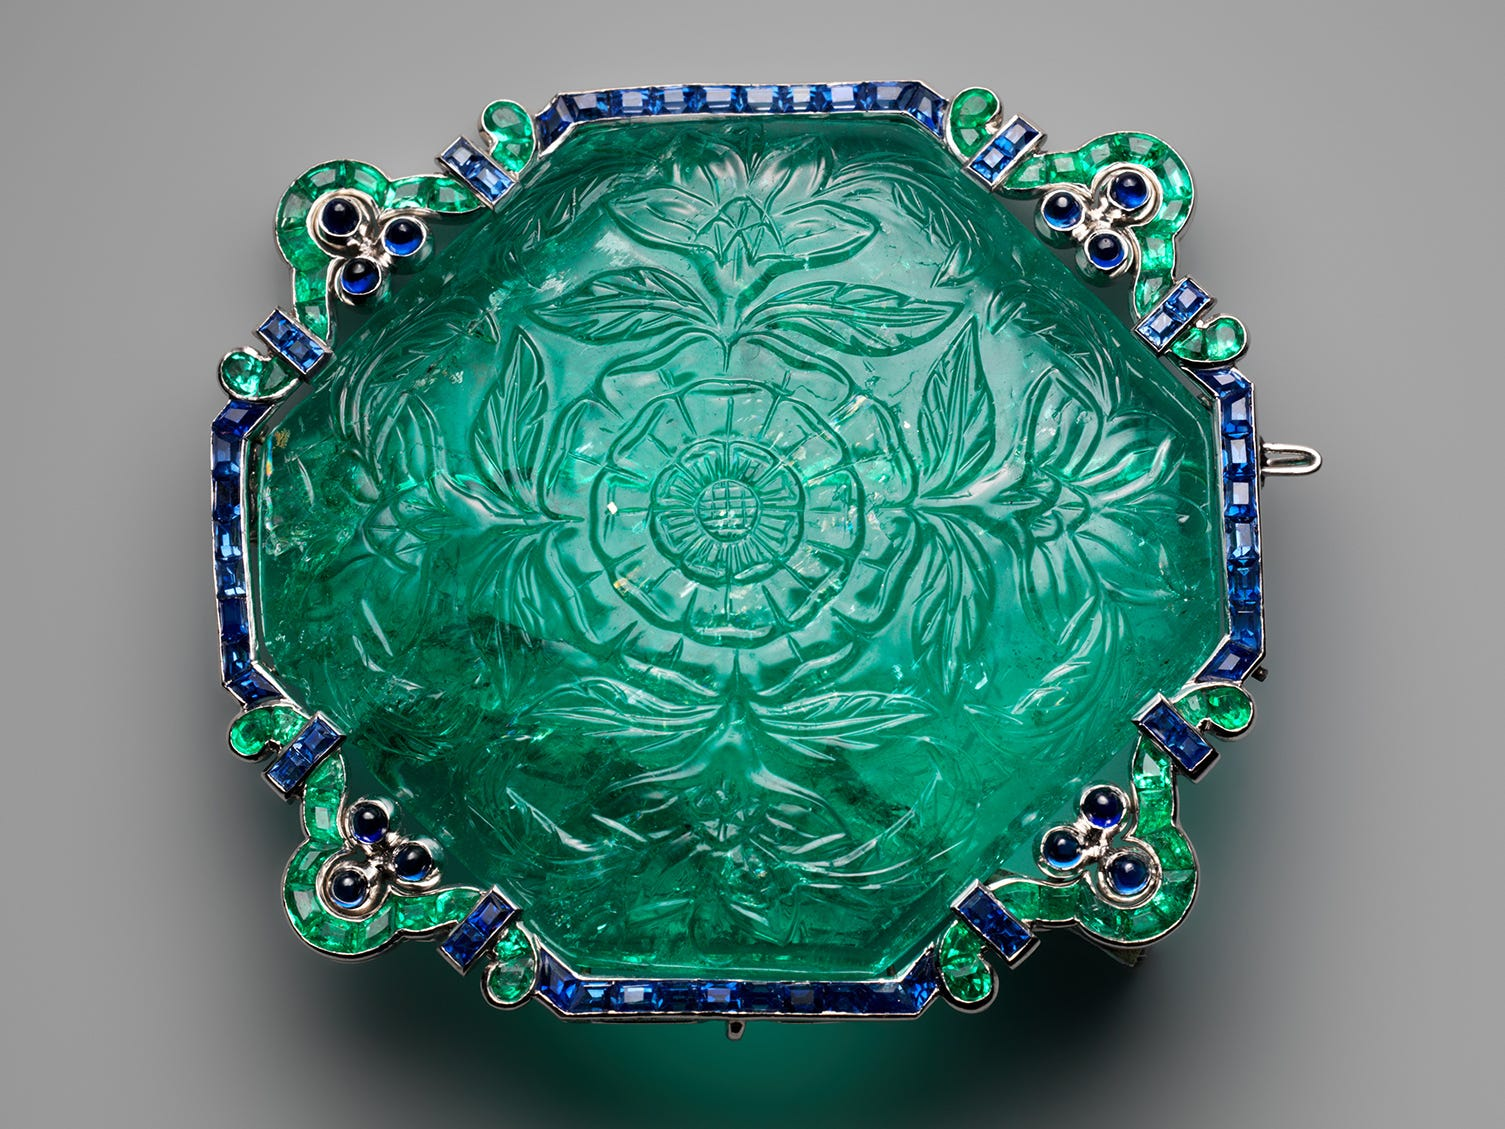 """The Metropolitan Museum of Art in New York has pulled more than 230 items from its collections for the """"Jewelry: The Body Transformed"""" exhibit."""